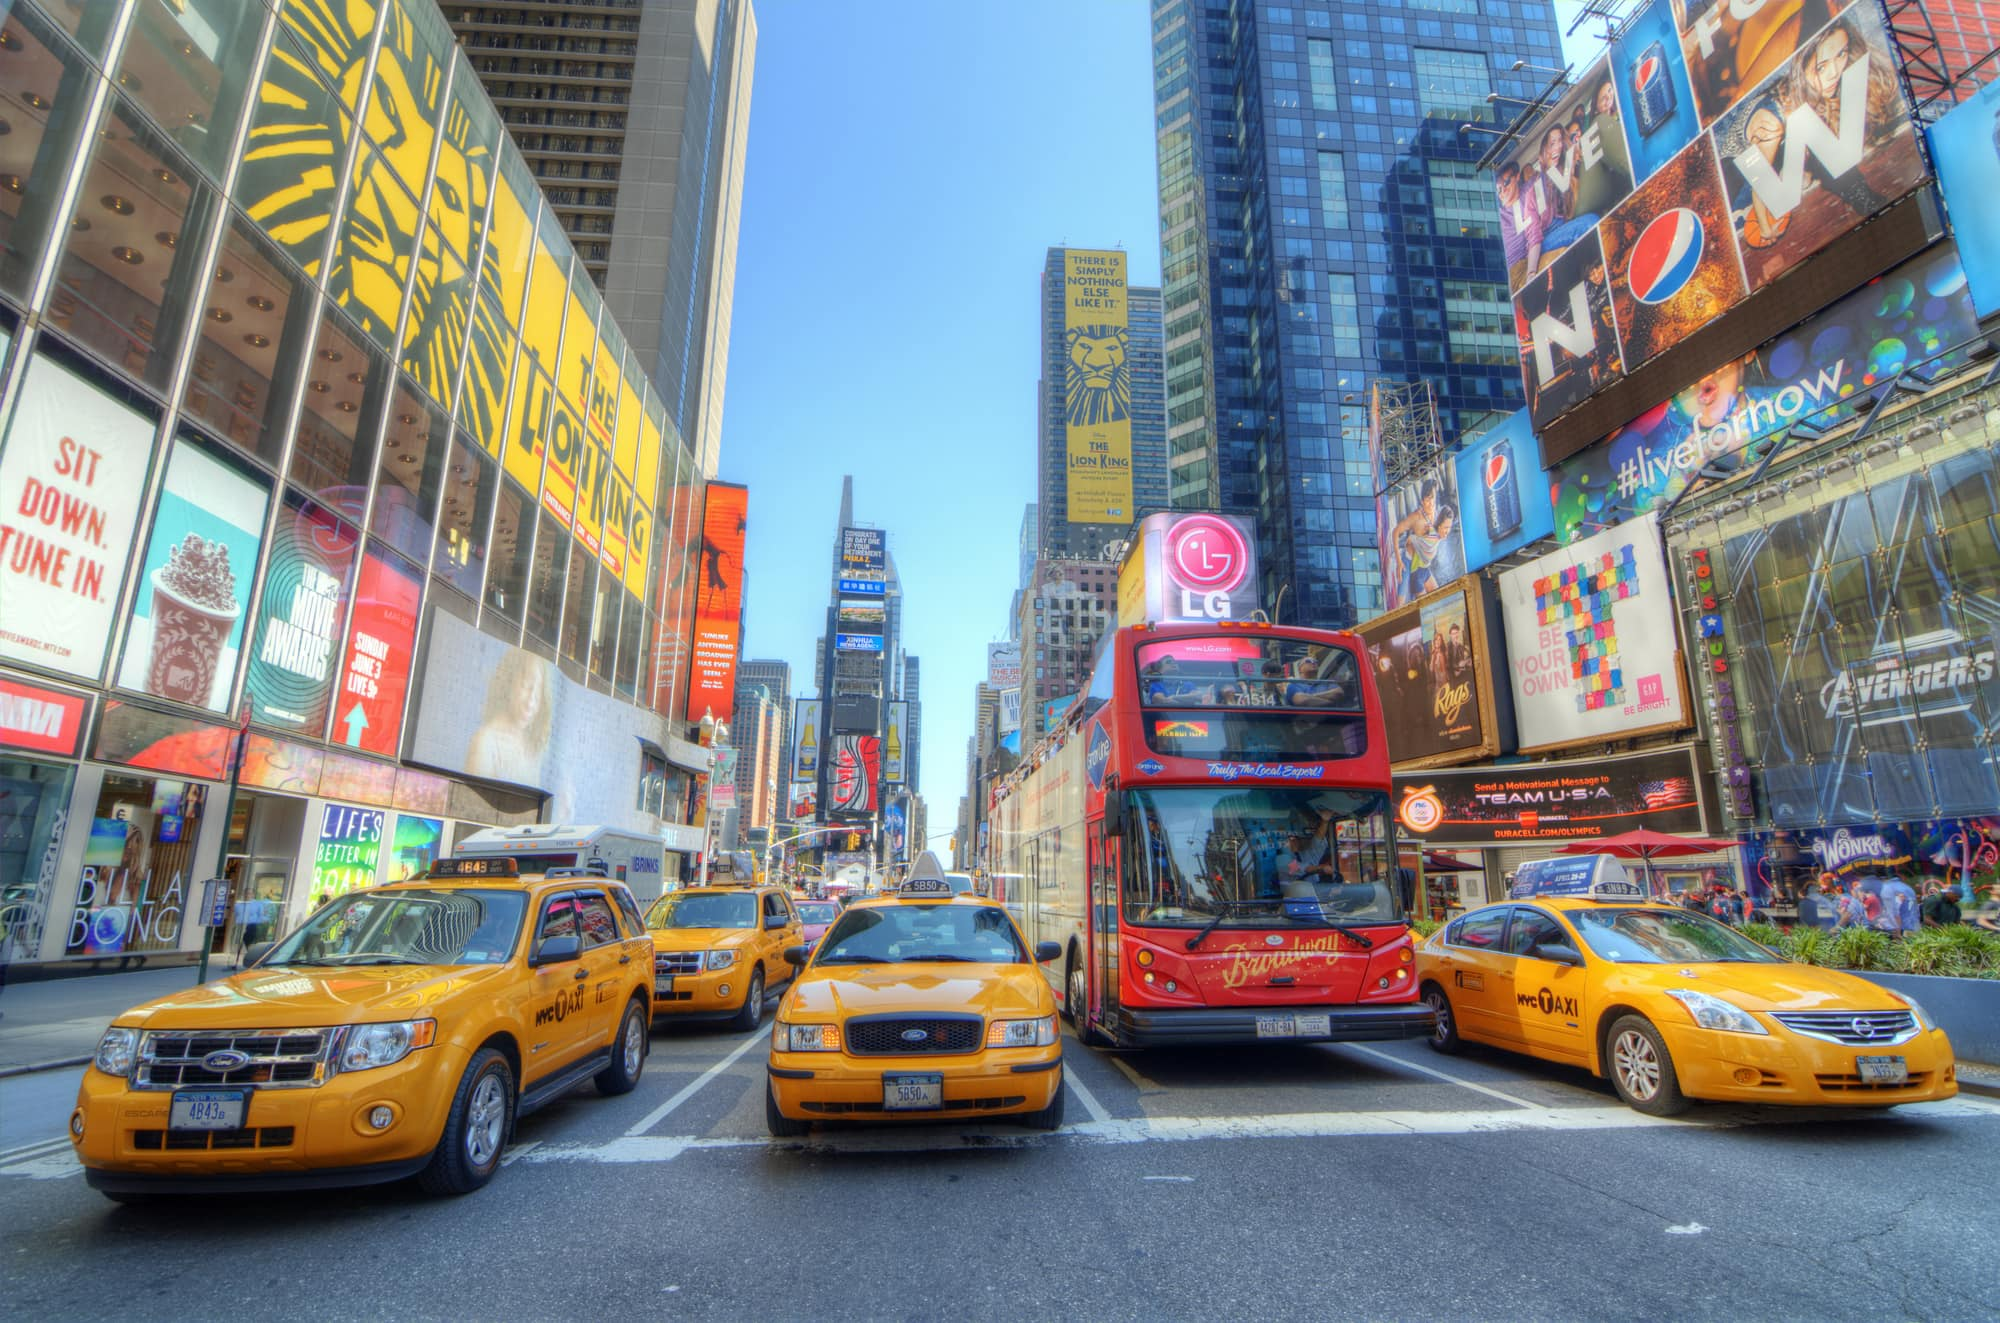 How to take the Hop On Hop Off New York